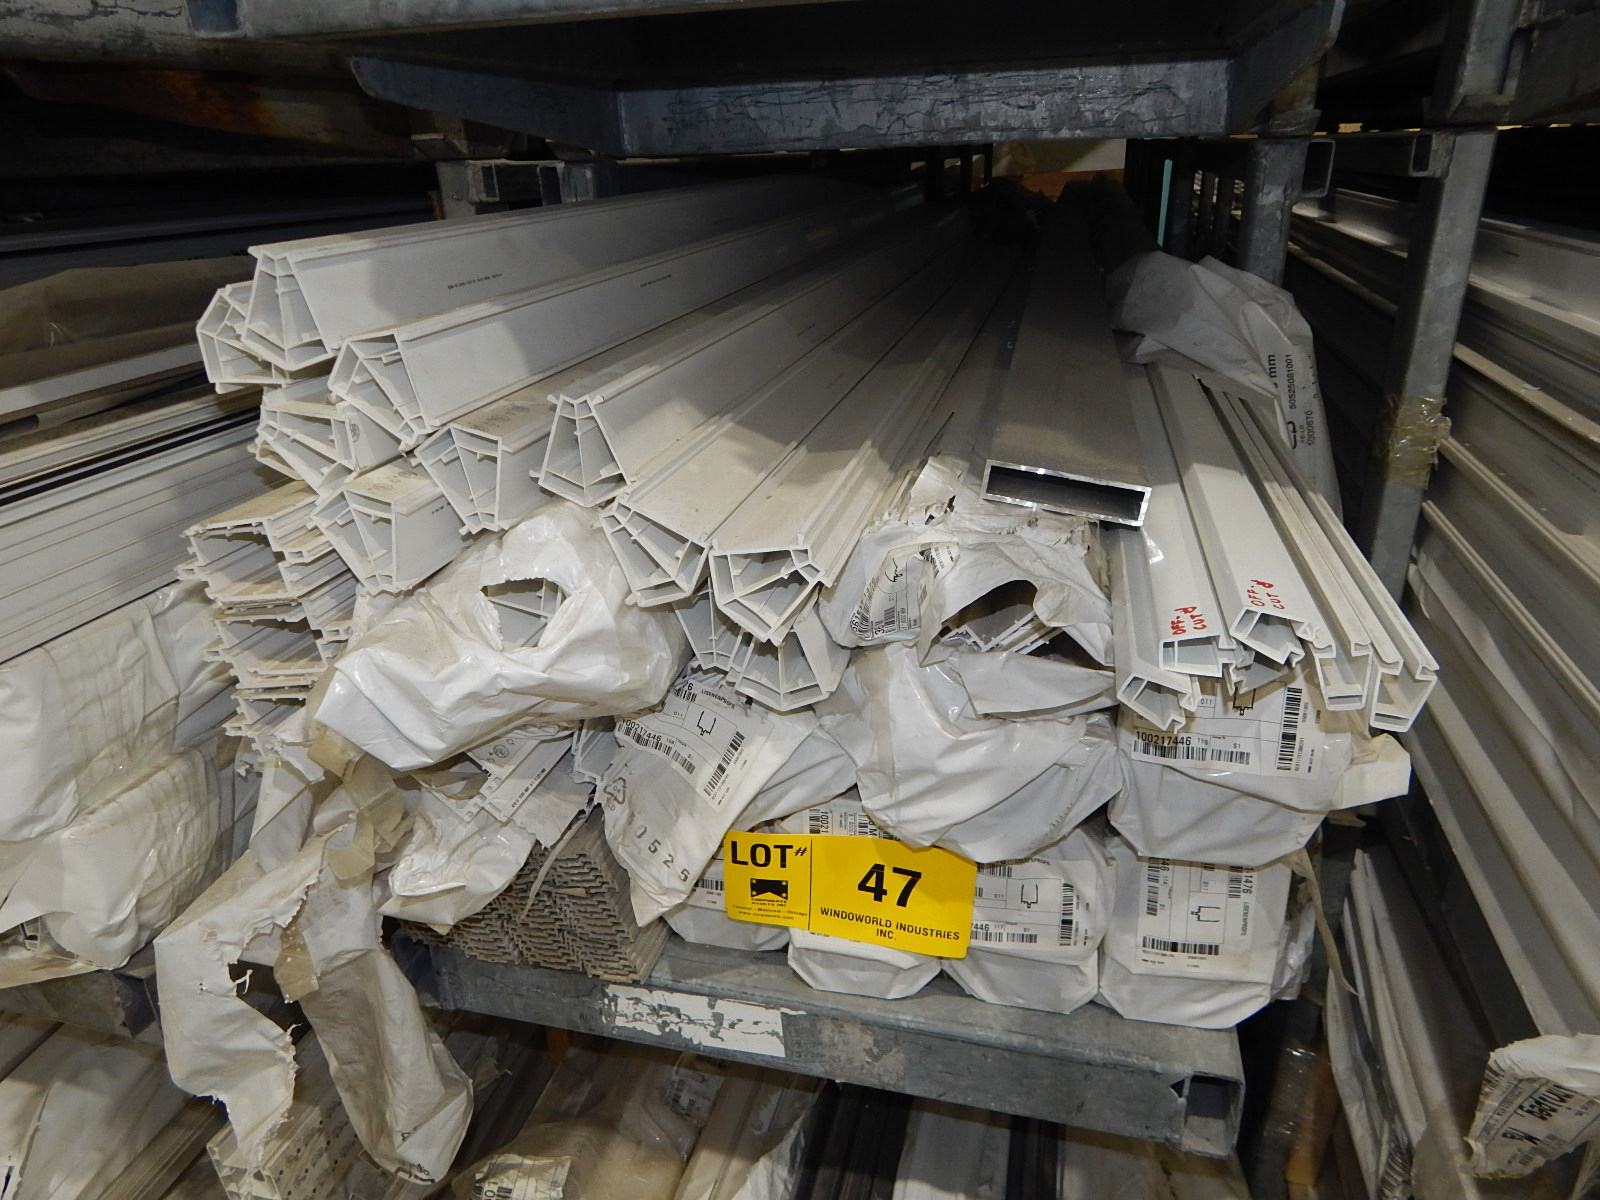 LOT/ REHAU CURTAIN WALL VARIOUS PROFILES PRESSURE PLATE AND COVER CAPS